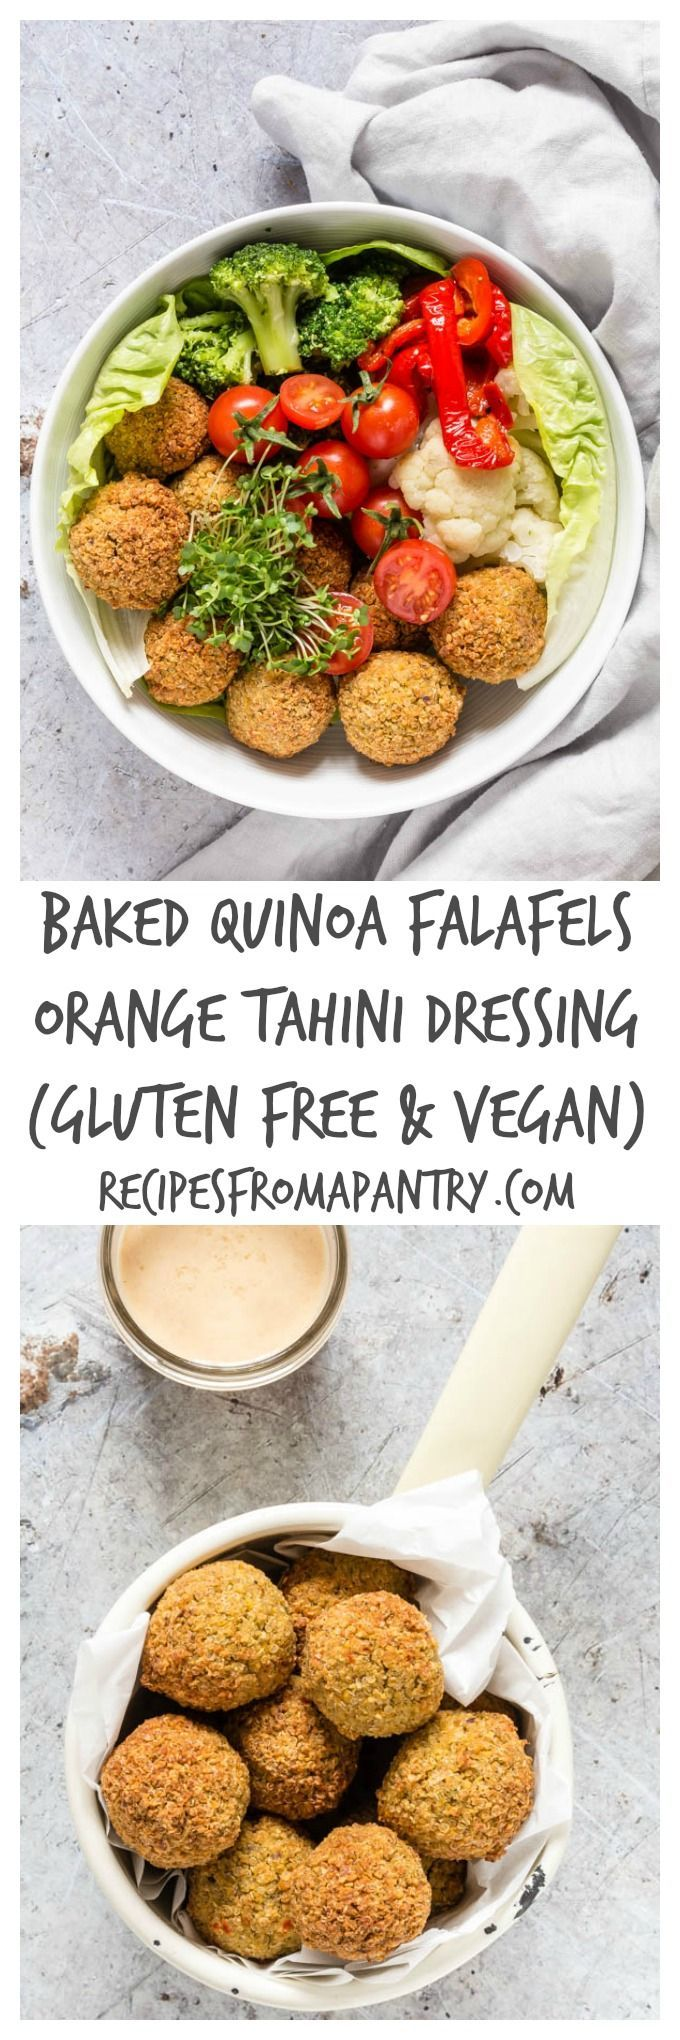 Baked Quinoa Falafels With An Orange Tahini Dressing | Recipes From A Pantry